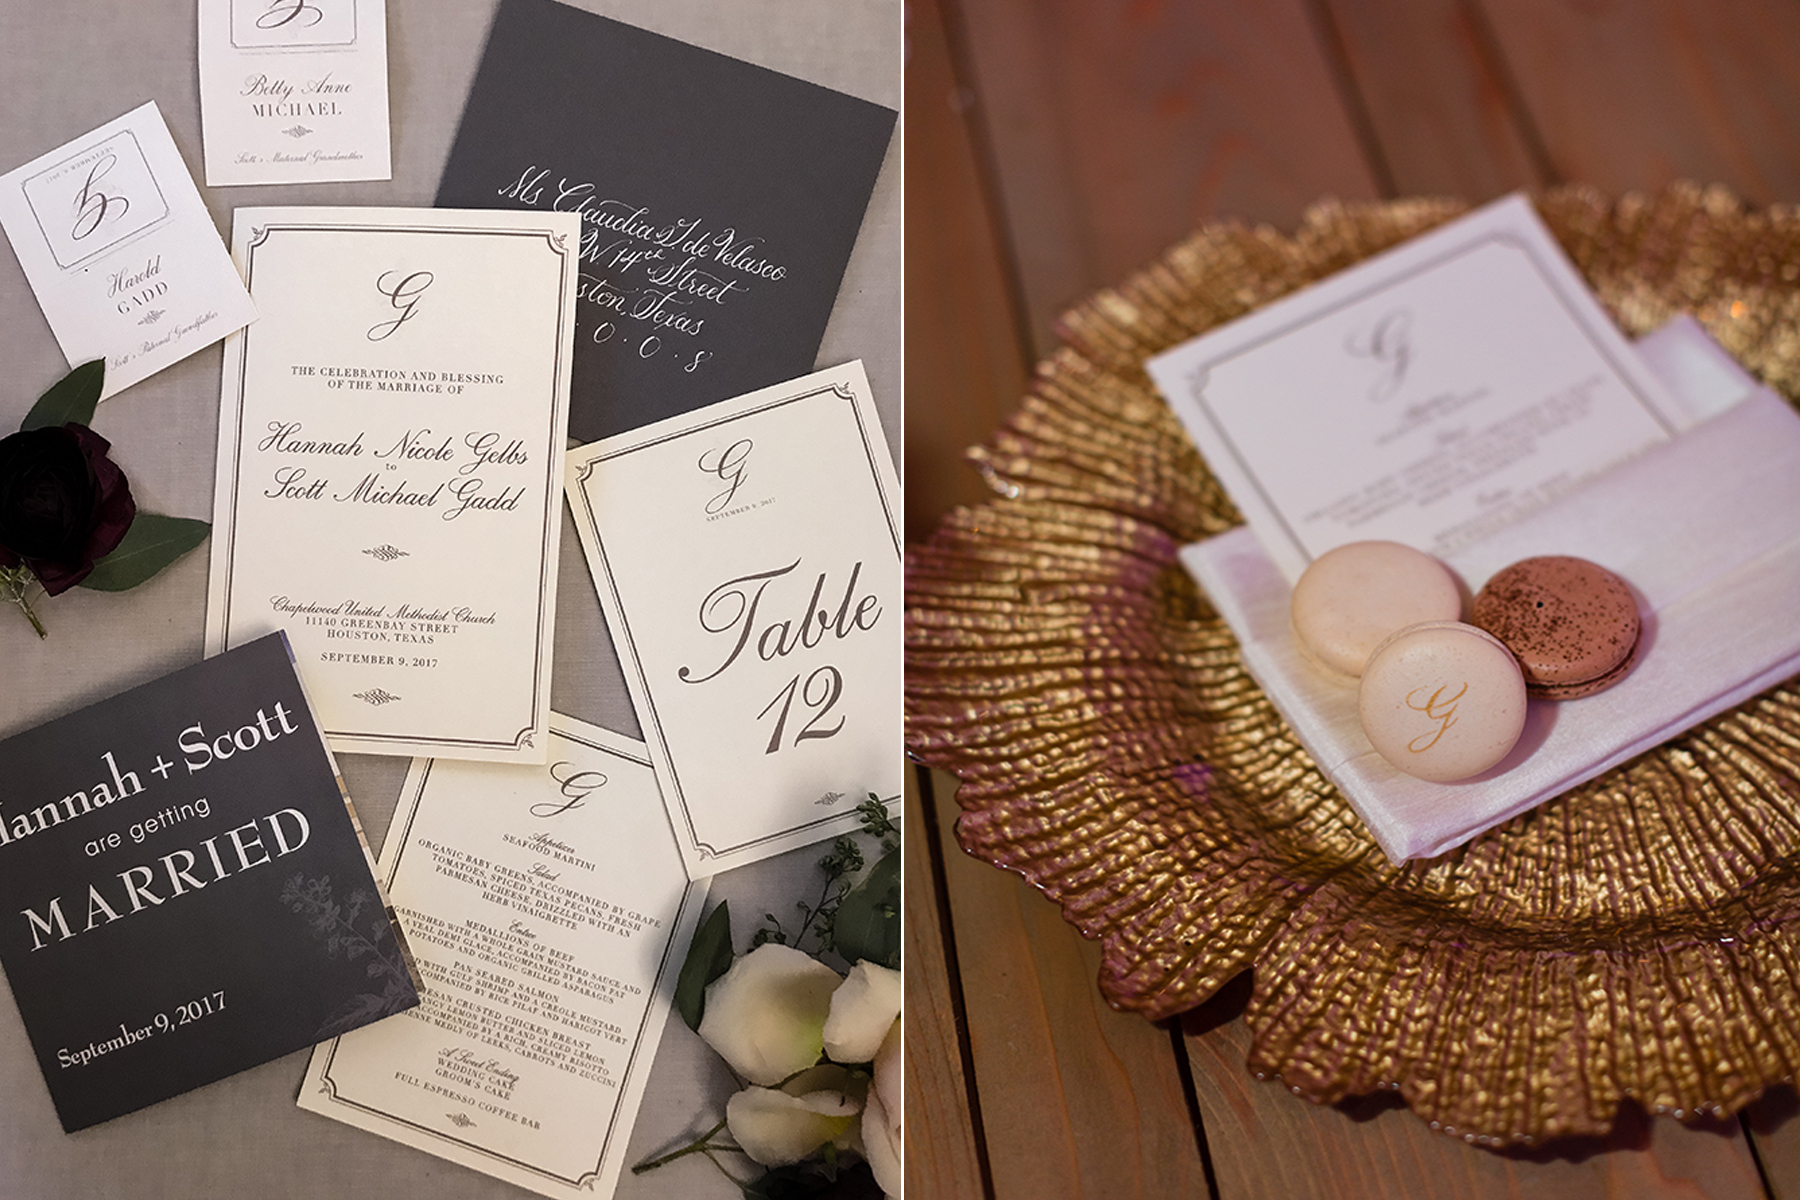 daytoremember.net | Koby Brown Photography | Wedding Stationery | A Day To Remember Houston Wedding Planning and Design